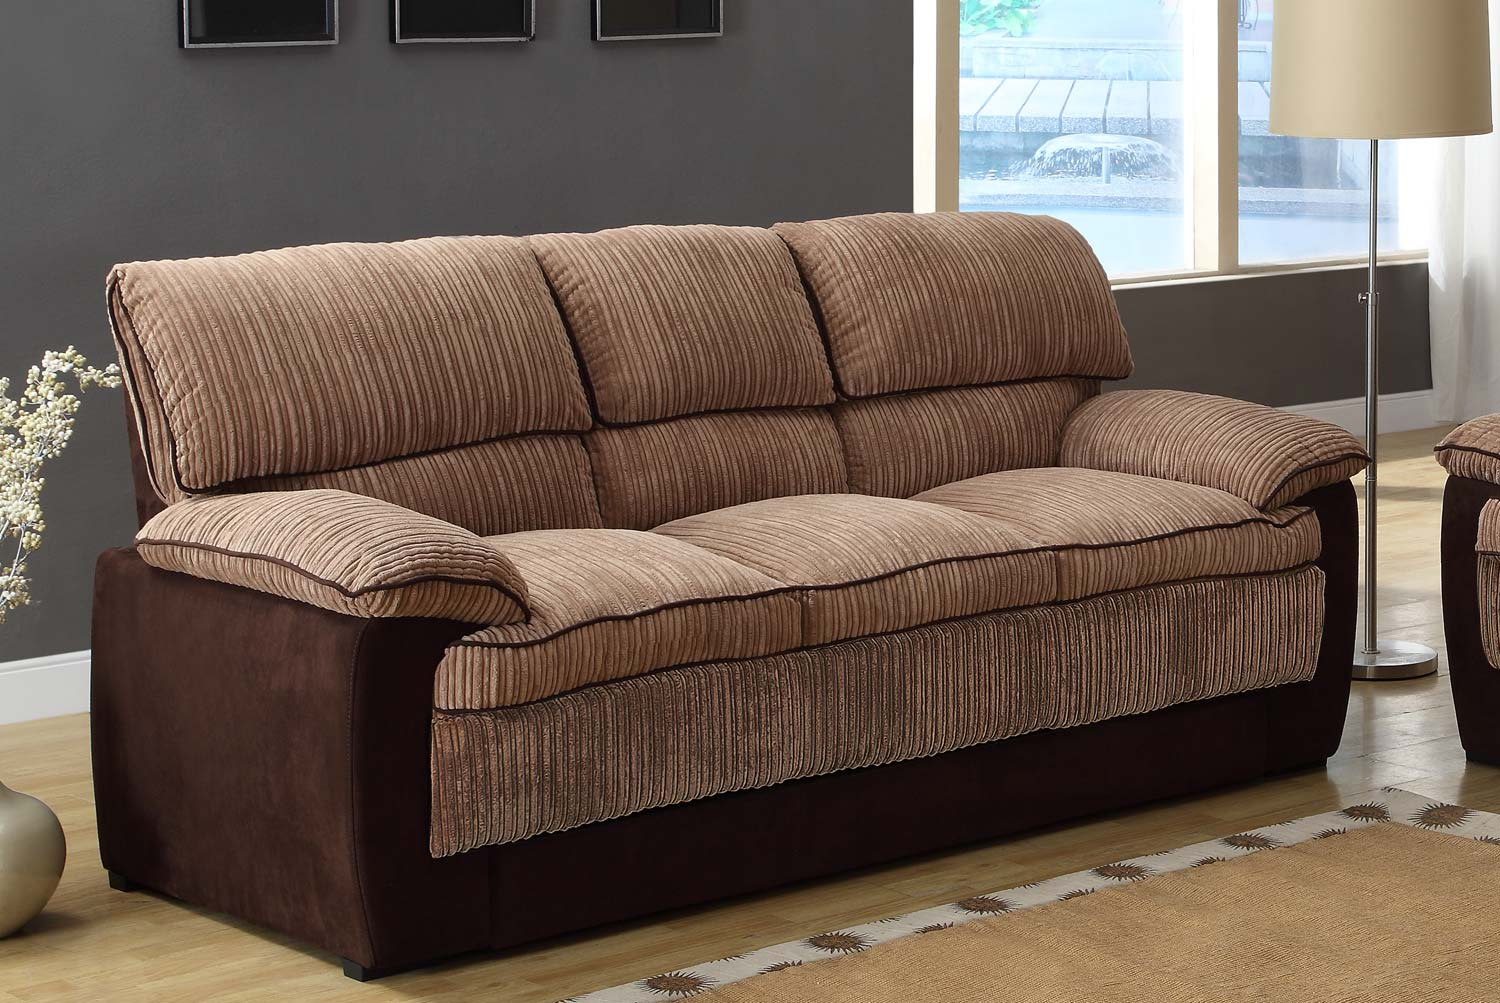 Recliner sofa covers - a comfortable look with elegance for daily use